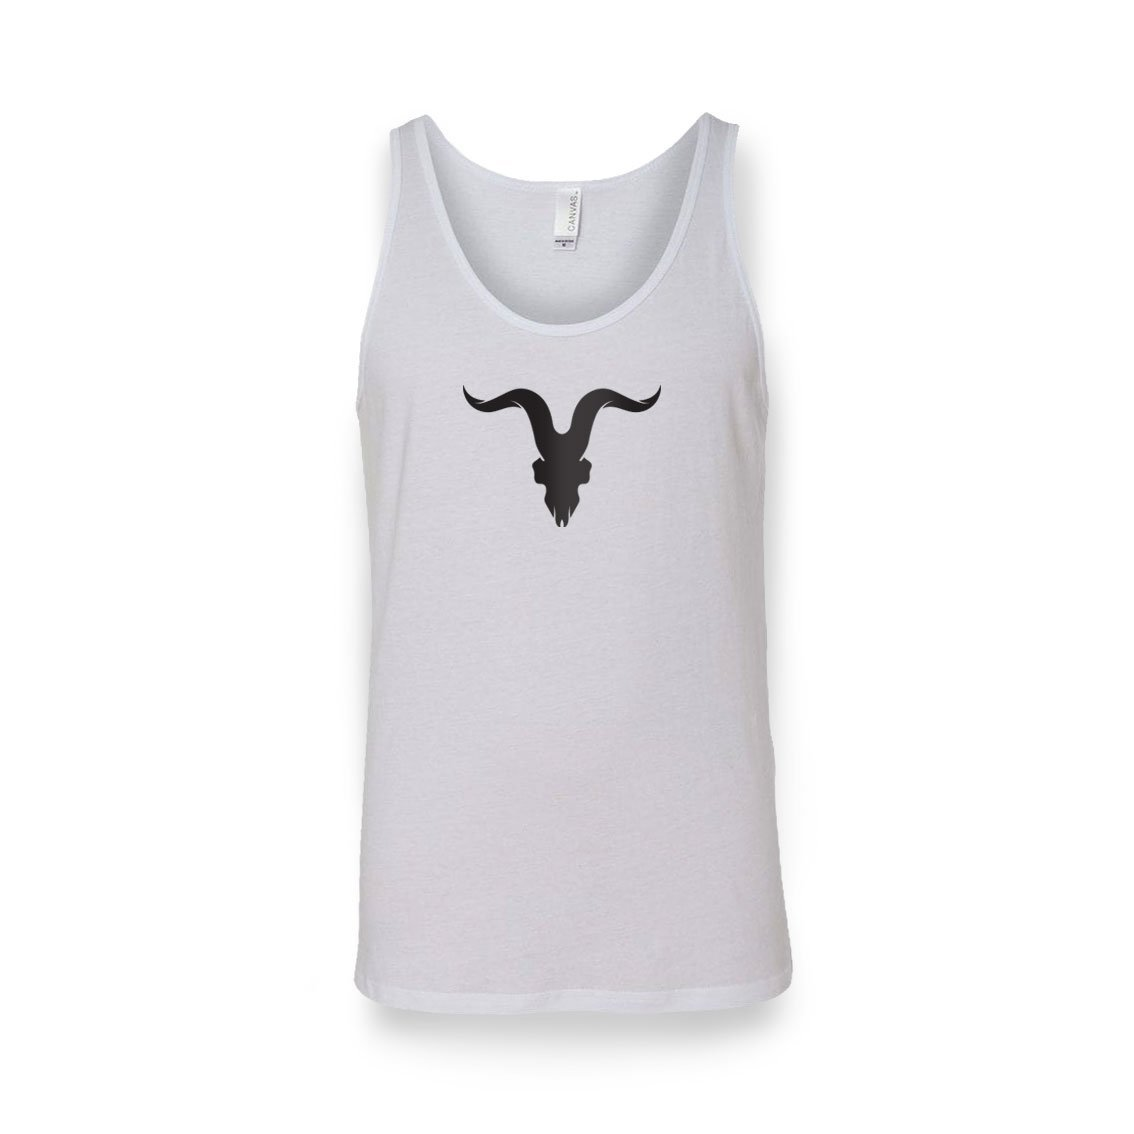 'Ready for Summer' Tanks - White with Black Logo